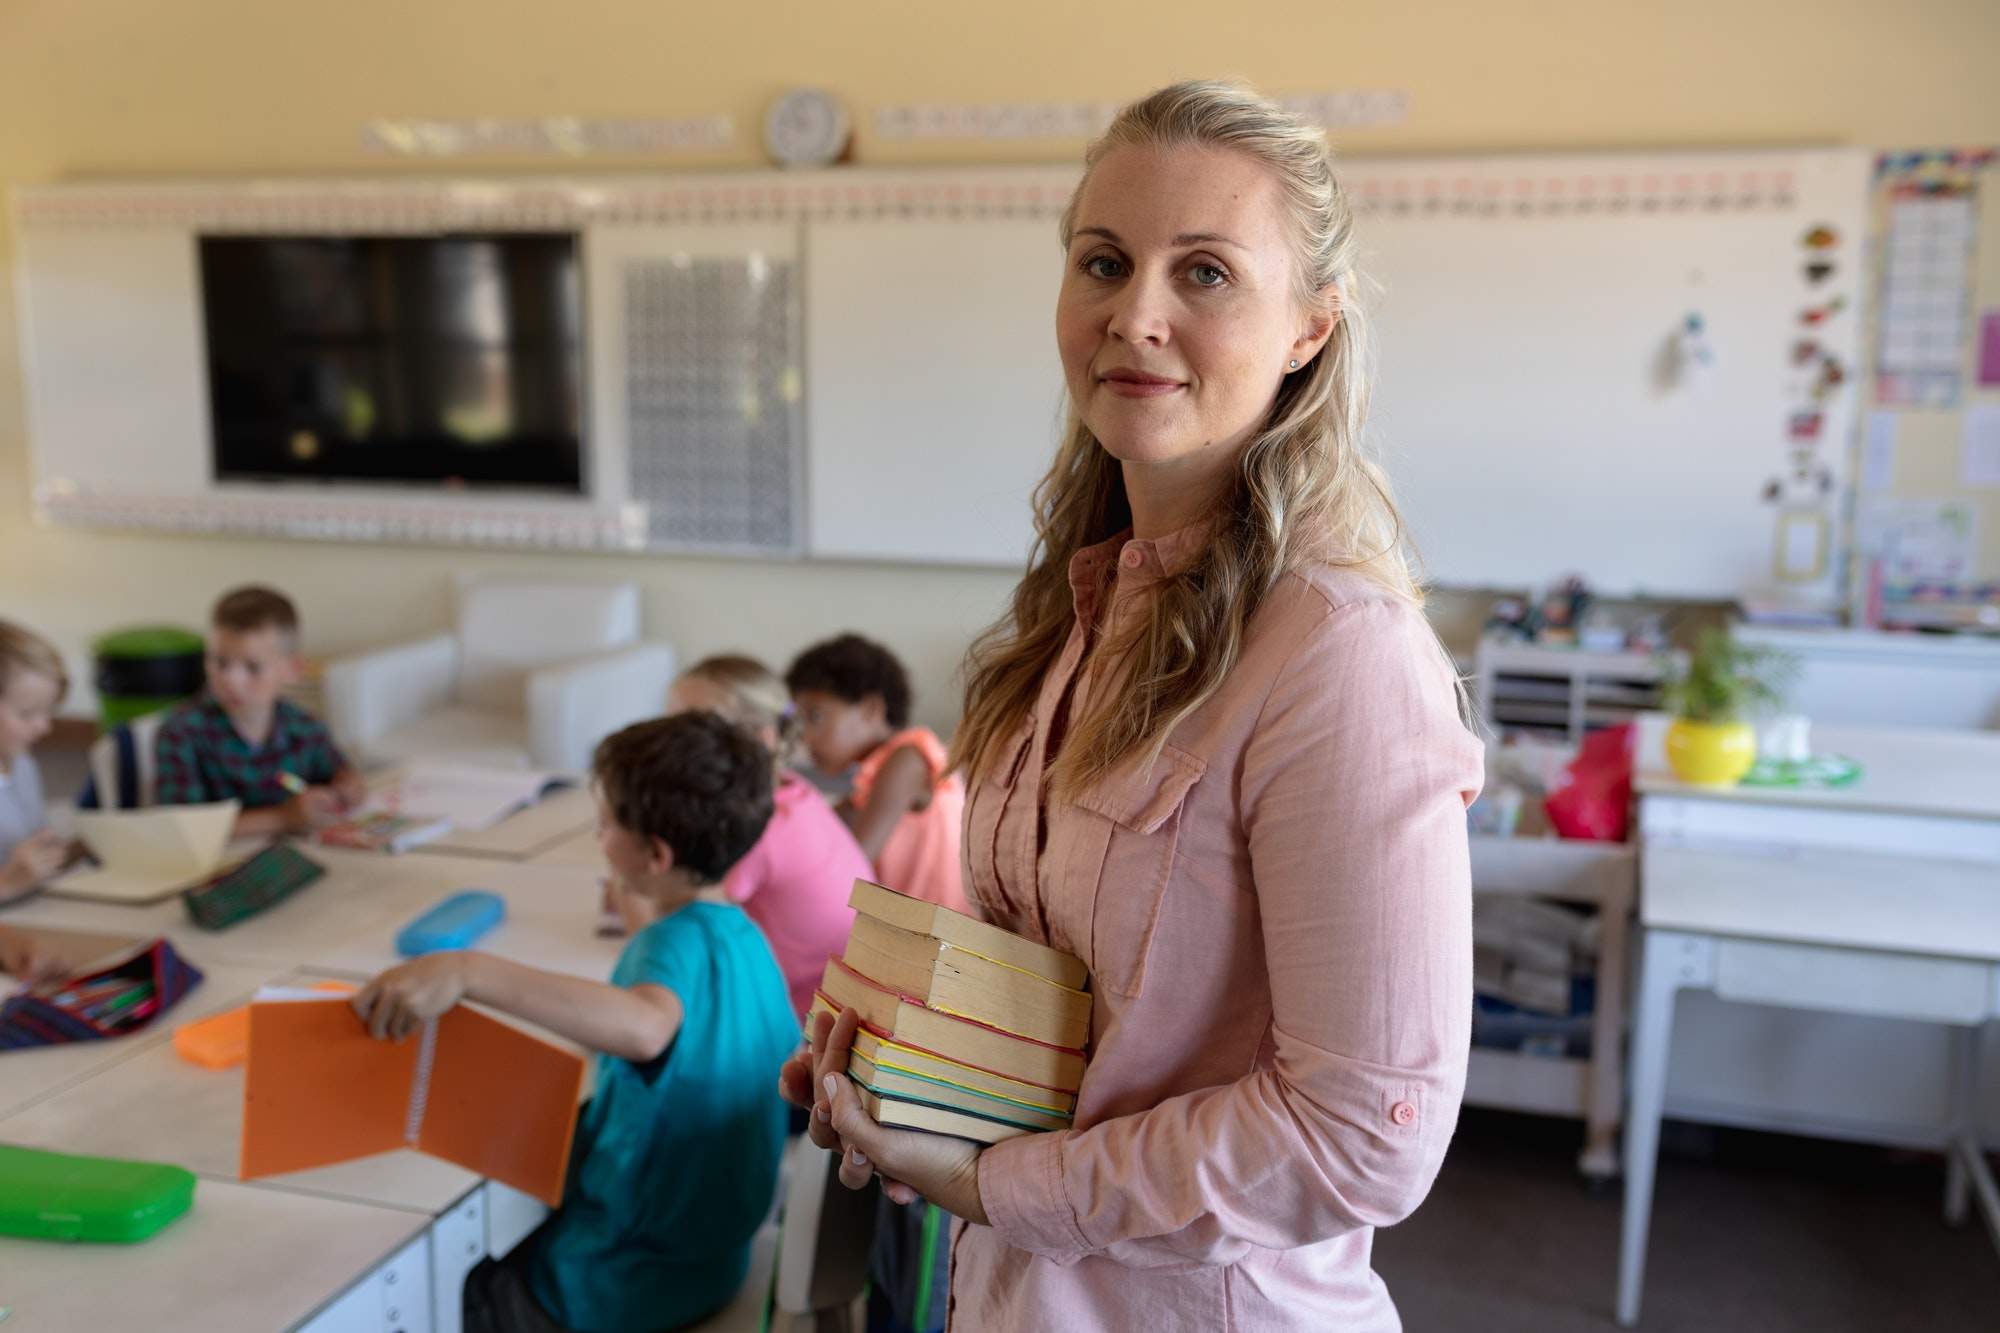 Female teacher with long blonde hair standing in a classroom